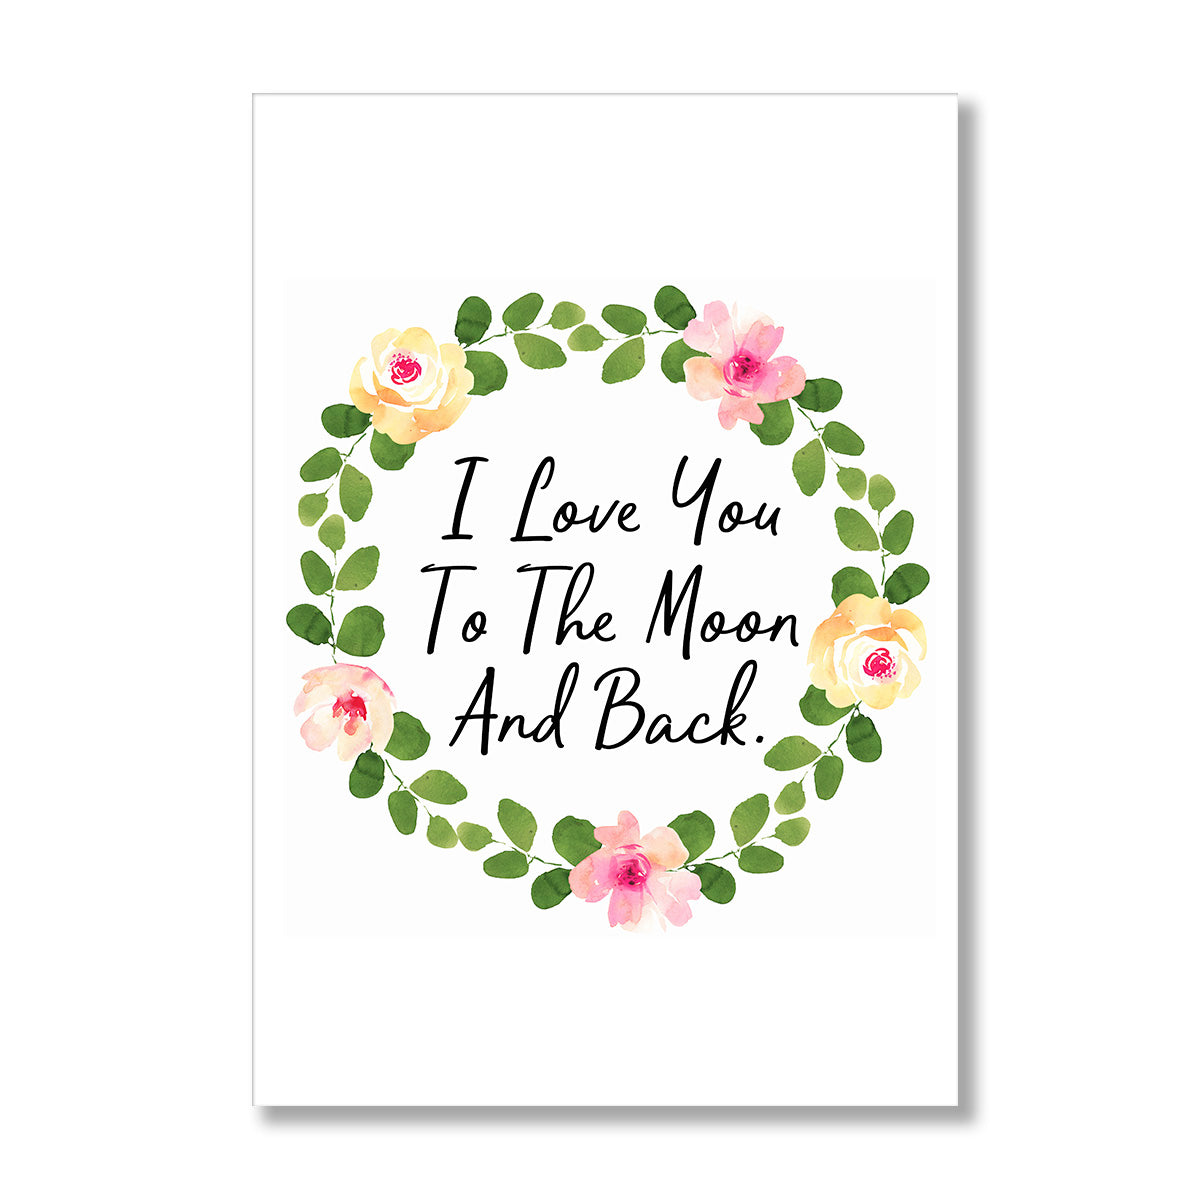 I Love You To The Moon And Back Poster Print-Print-Mode Prints